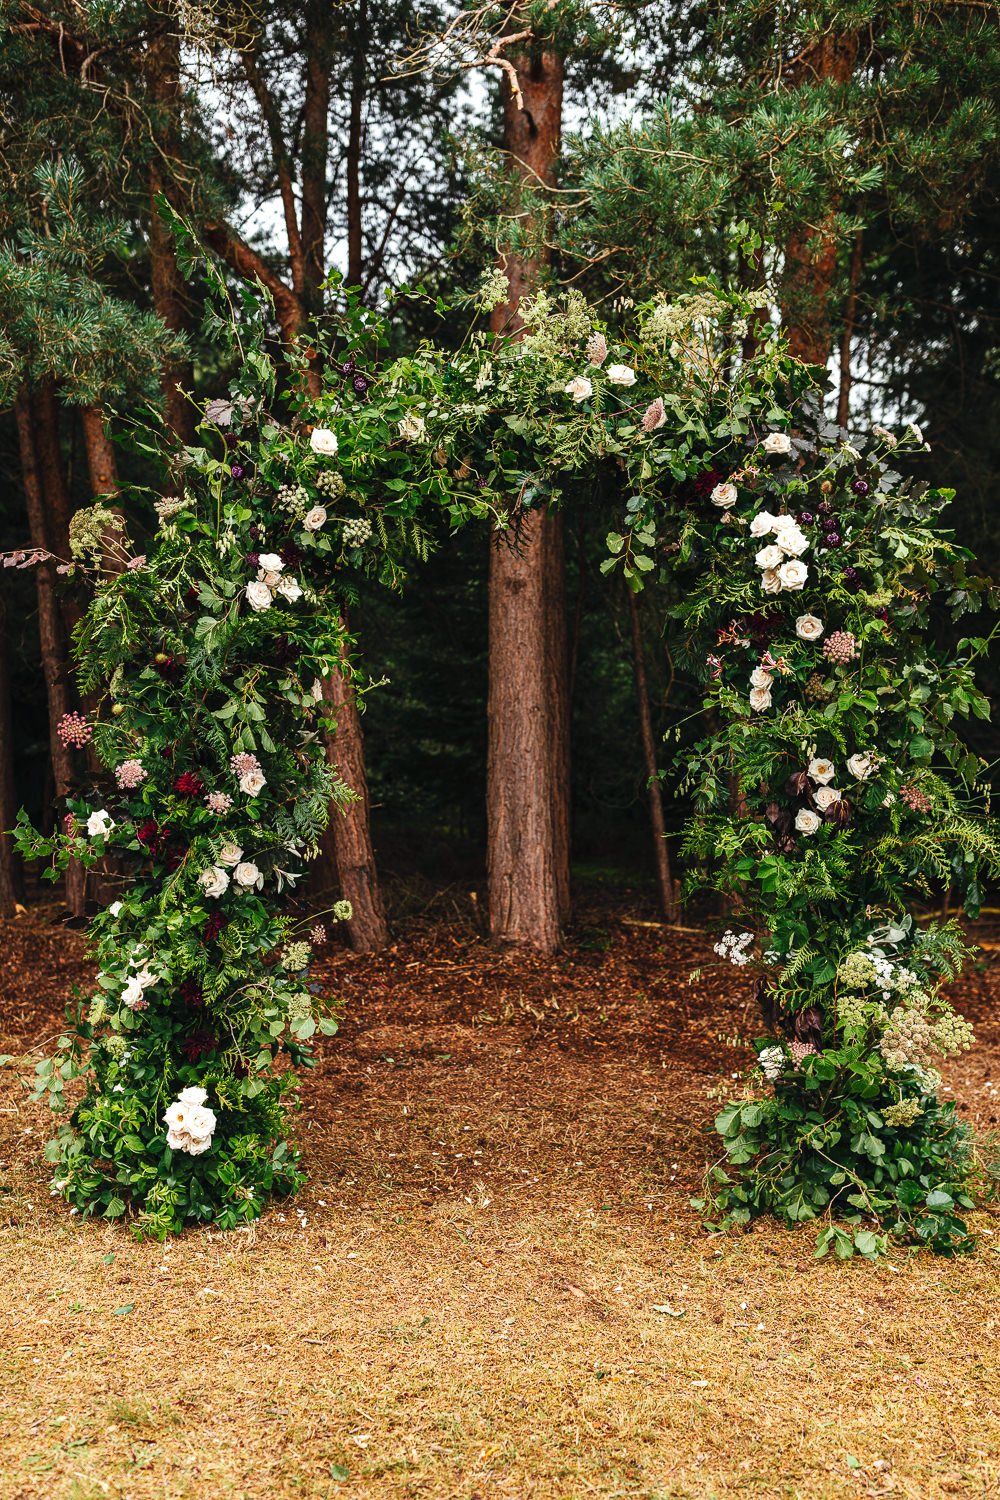 Woodland Outdoor Ceremony Flower Arch Persian Rug Aisle Greenery Foliage Festival Party Wedding Kirsty Mackenzie Photography